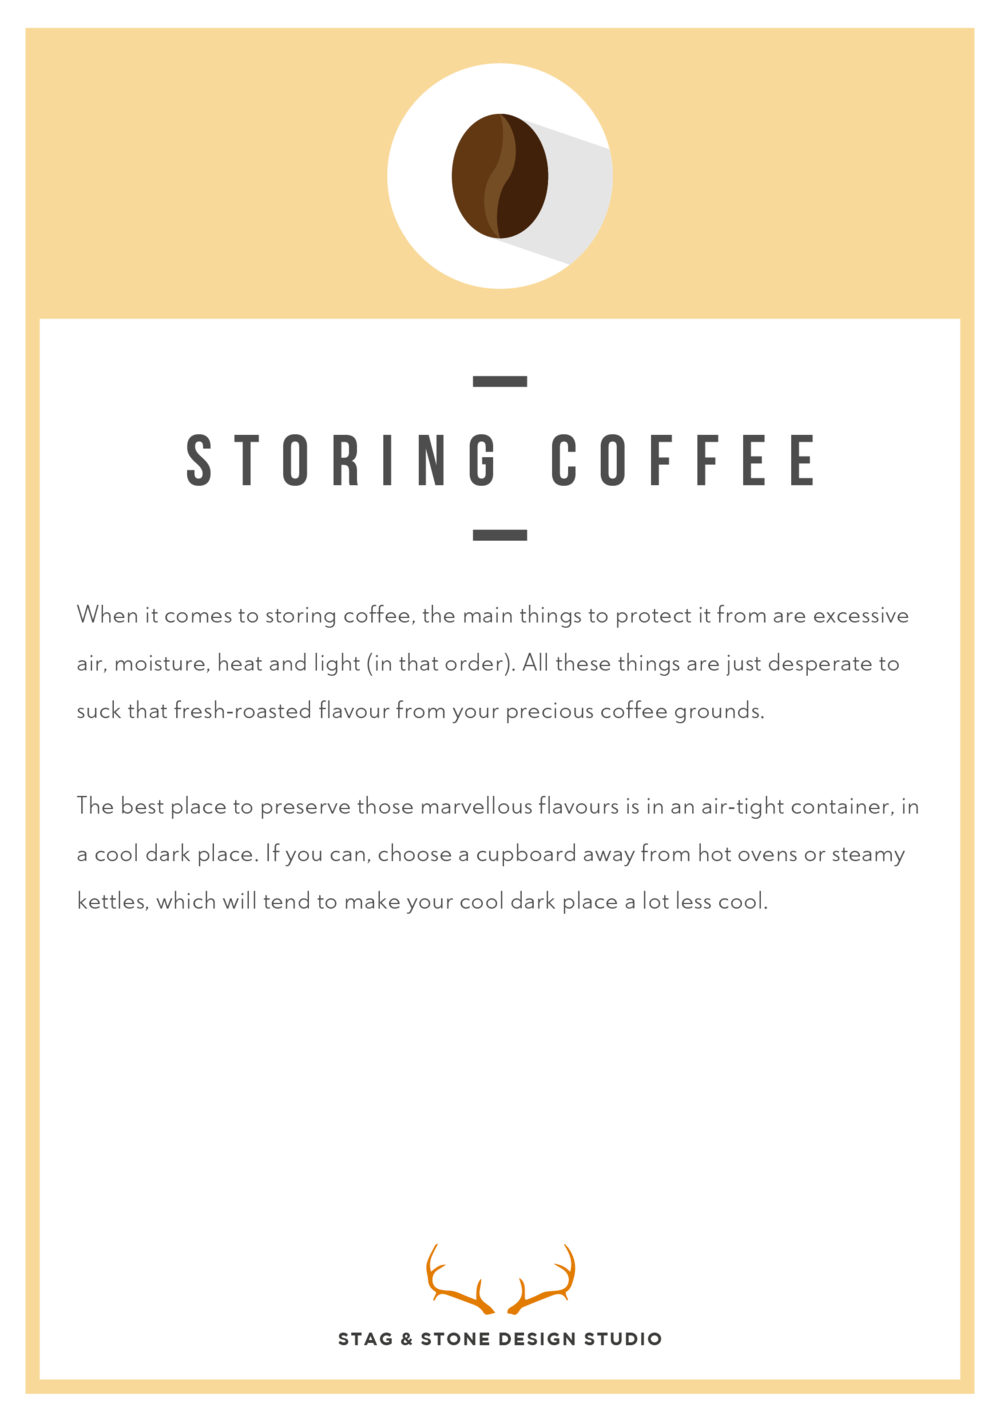 Storing Coffee Instructions